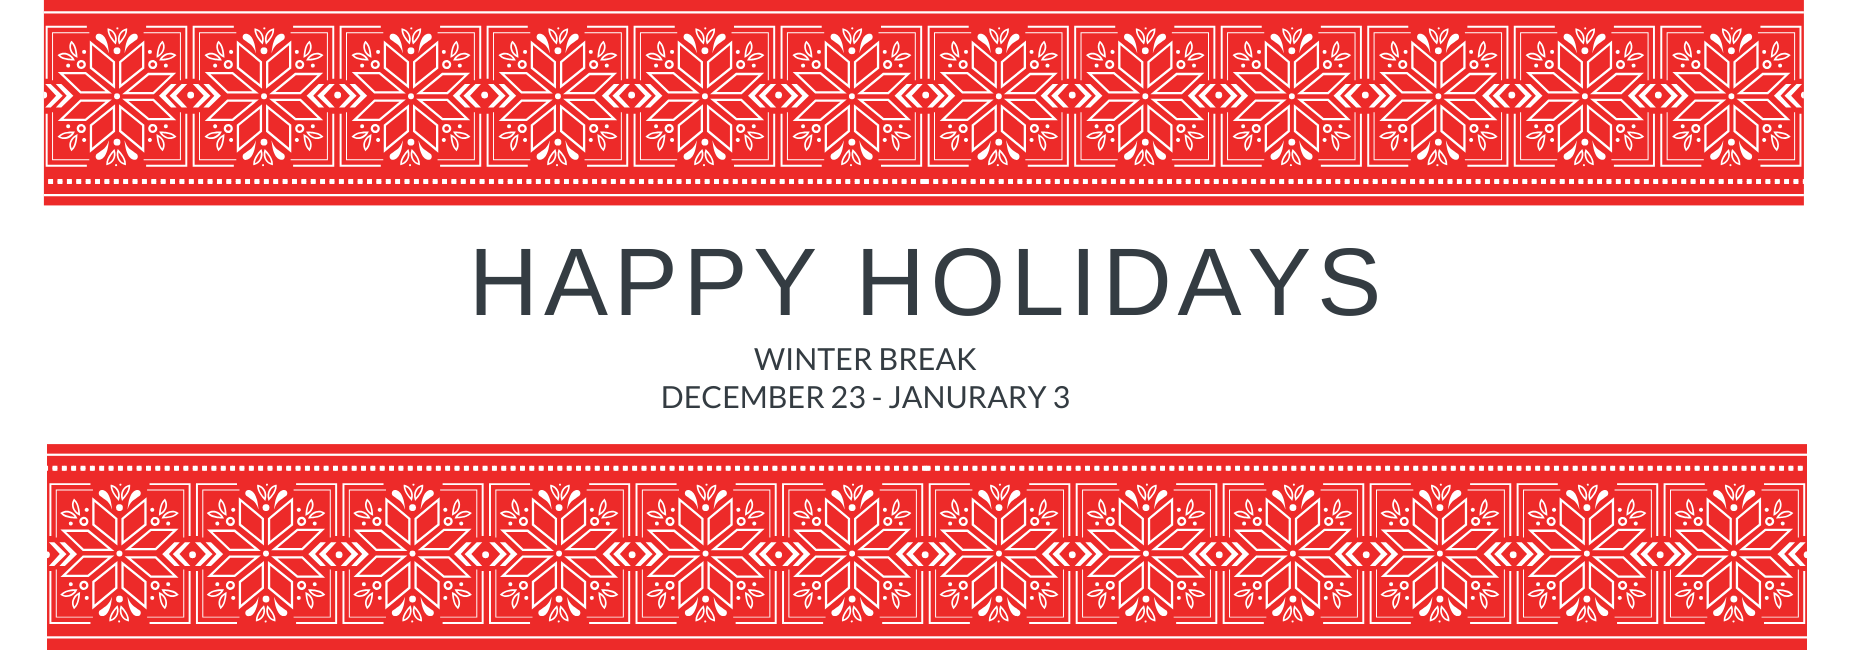 Winter Break December 23 - January 3